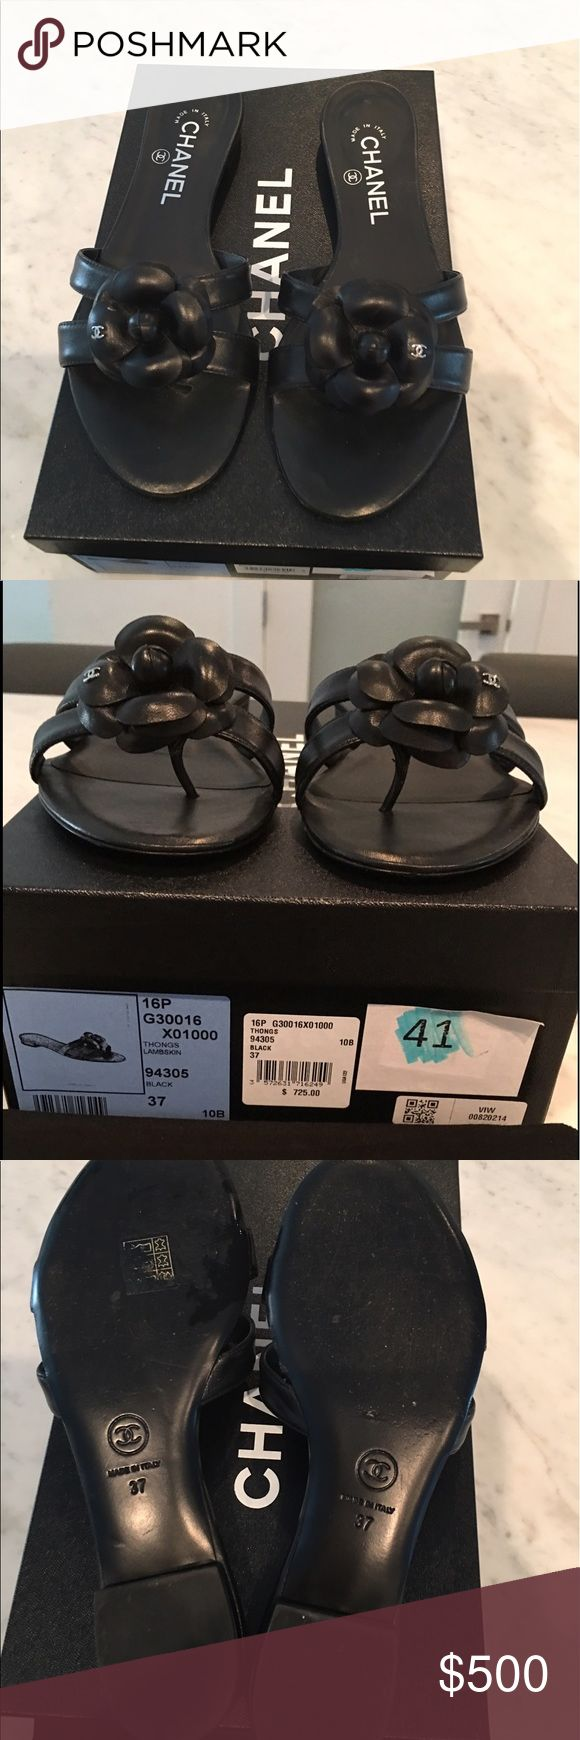 Chanel sandals Chanel Sandals  Size: 37  Color: Black  Condition: Excellent, wore once  Original Price: $725 Asking price: $500 CHANEL Shoes Sandals